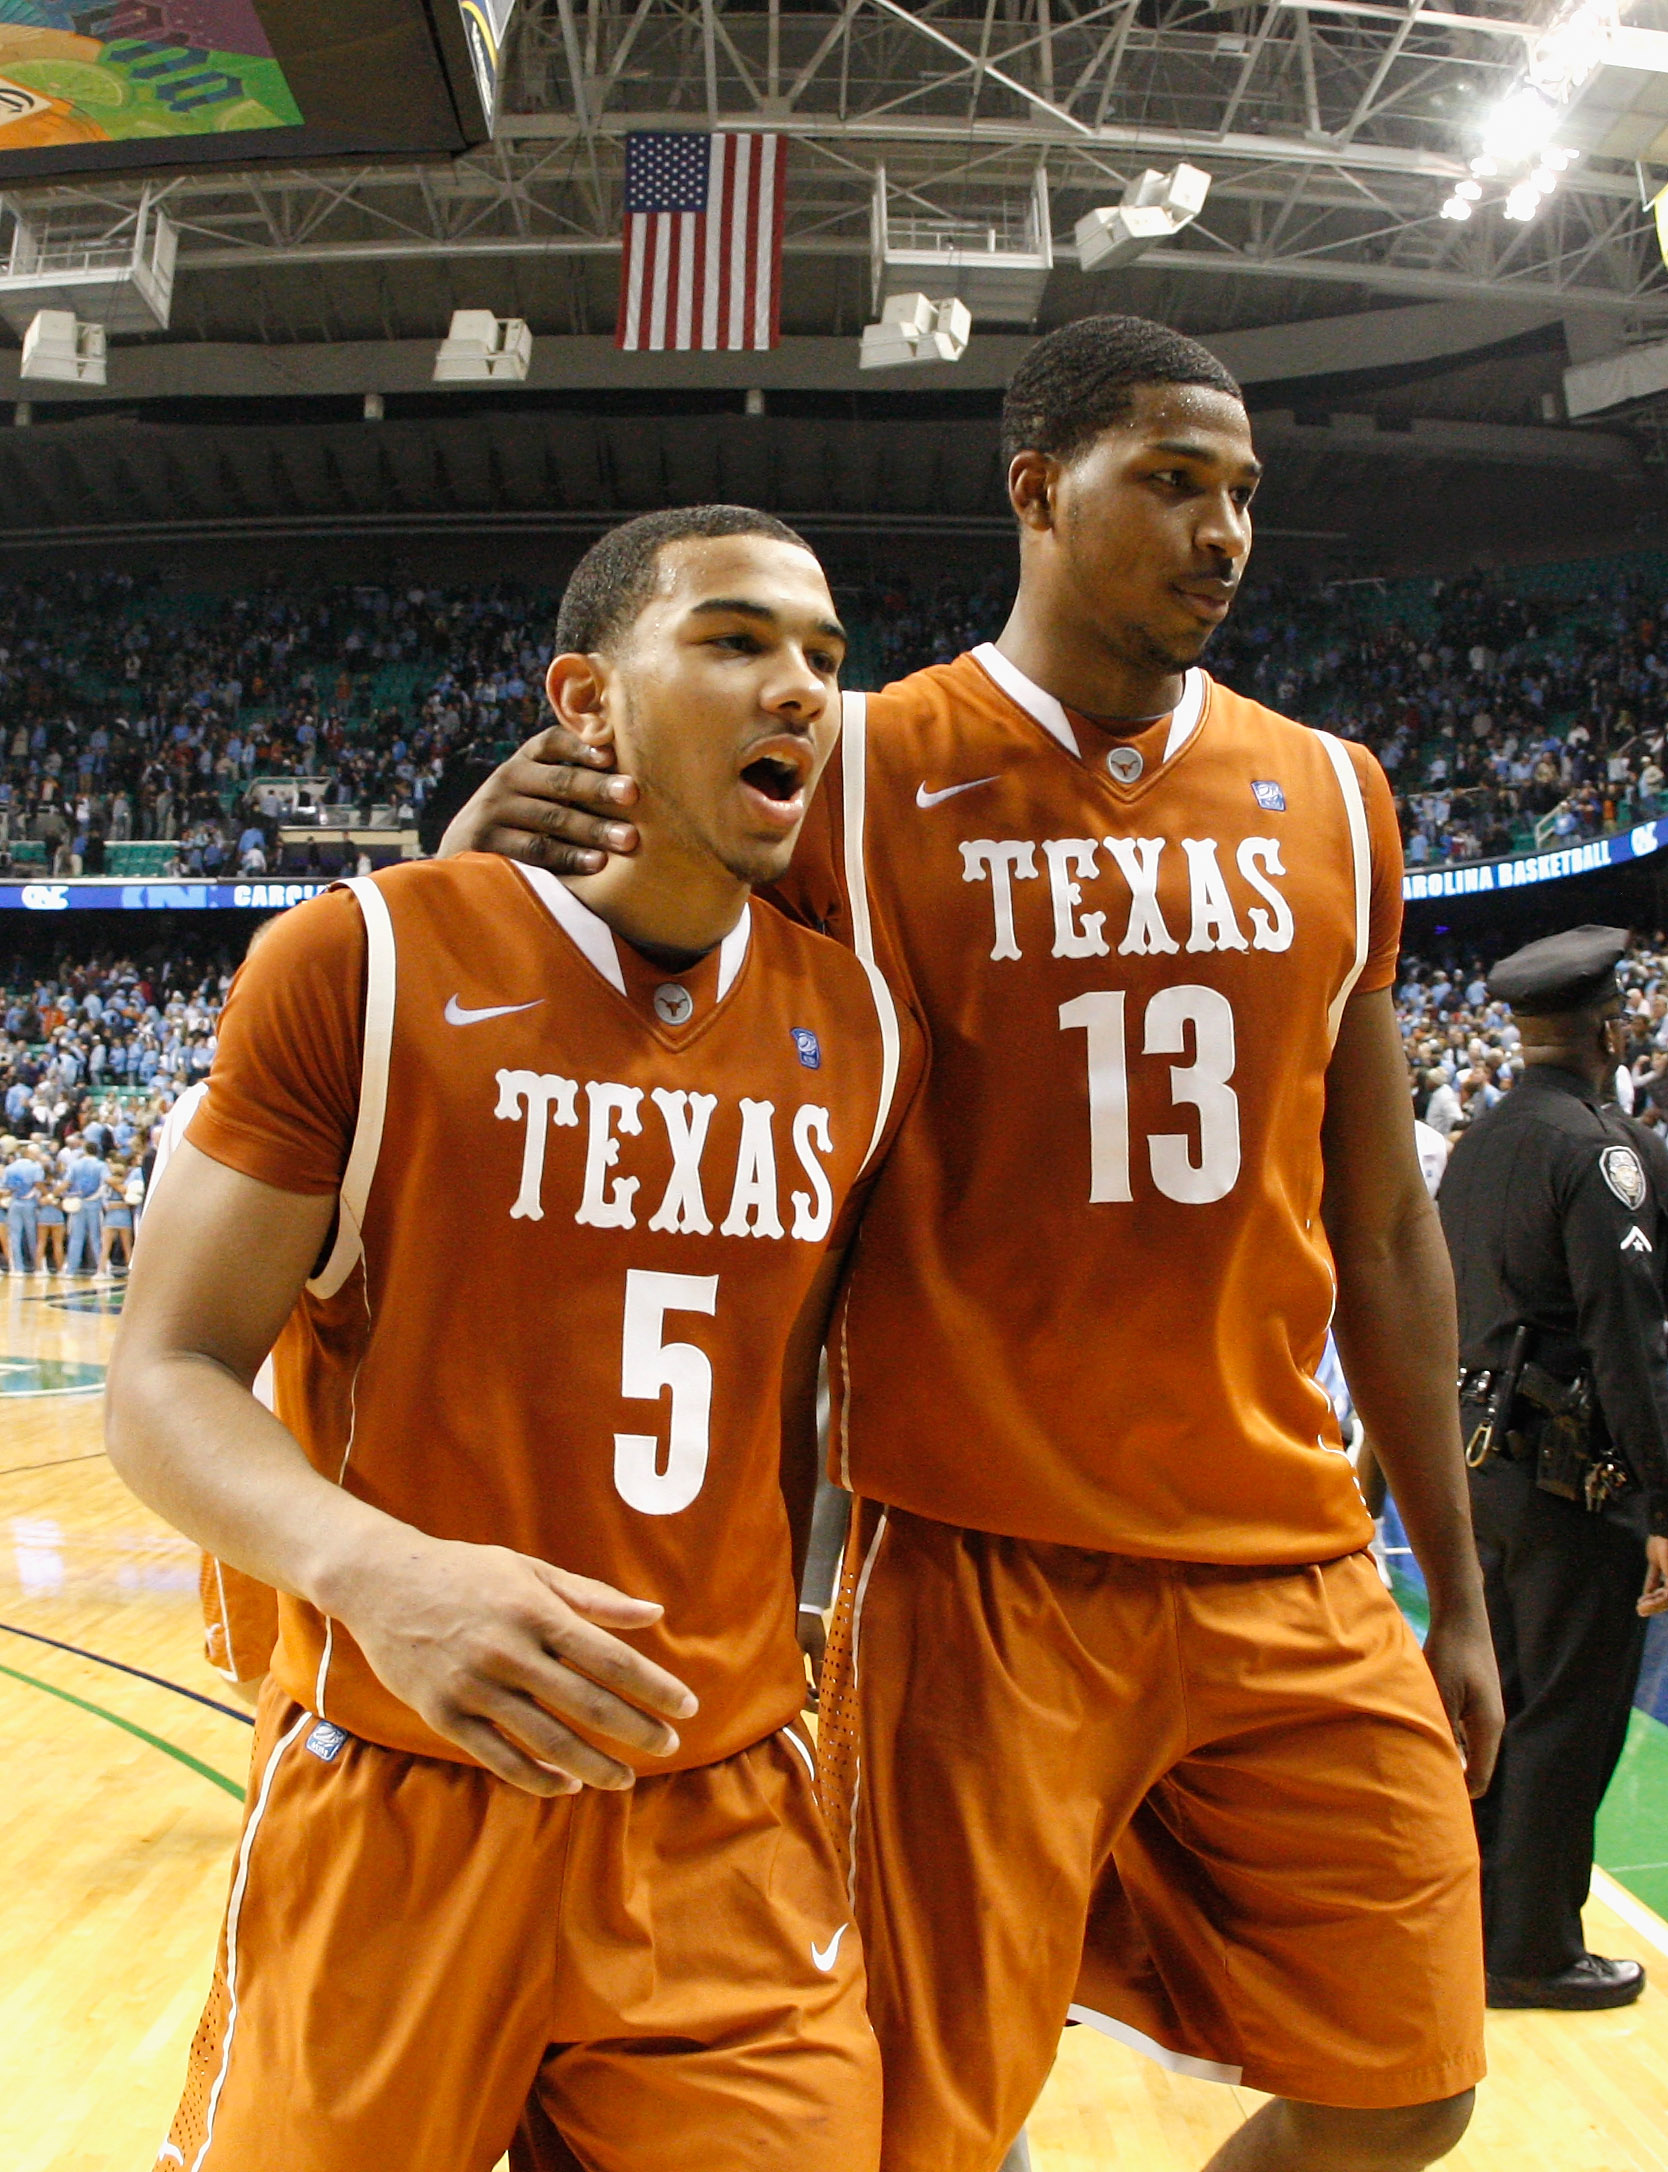 GREENSBORO, NC - DECEMBER 18:  Cory Joseph #5 and Tristan Thompson #13 of the Texas Longhorns react after their 78-76 win over the North Carolina Tar Heels Greensboro Coliseum on December 18, 2010 in Greensboro, North Carolina.  (Photo by Kevin C. Cox/Get